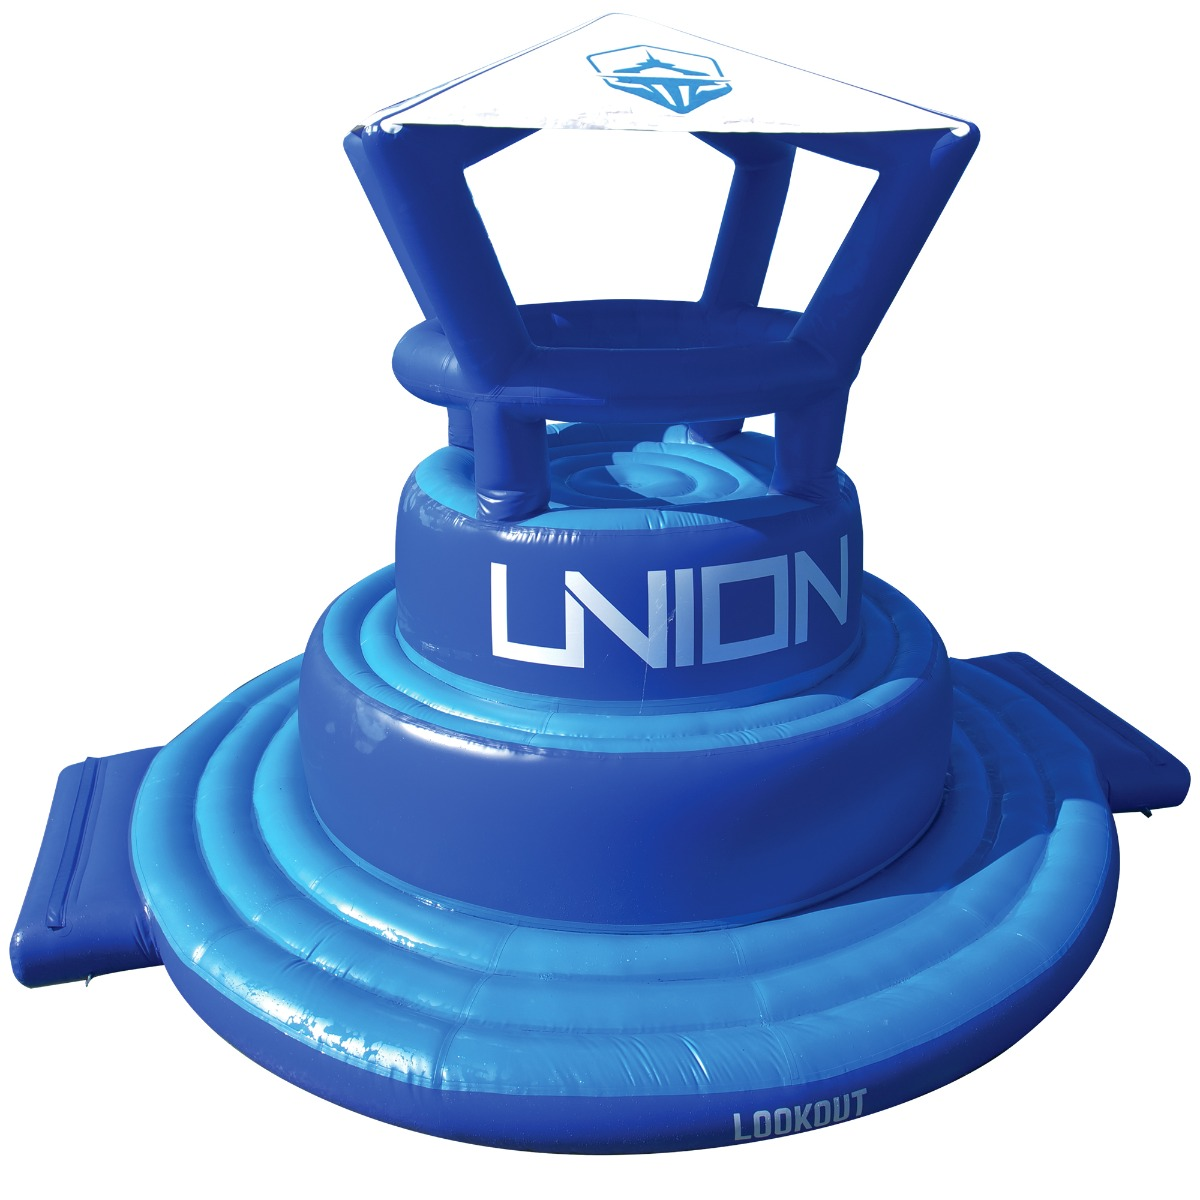 User Manual: Union Aquaparks Lookout Tower